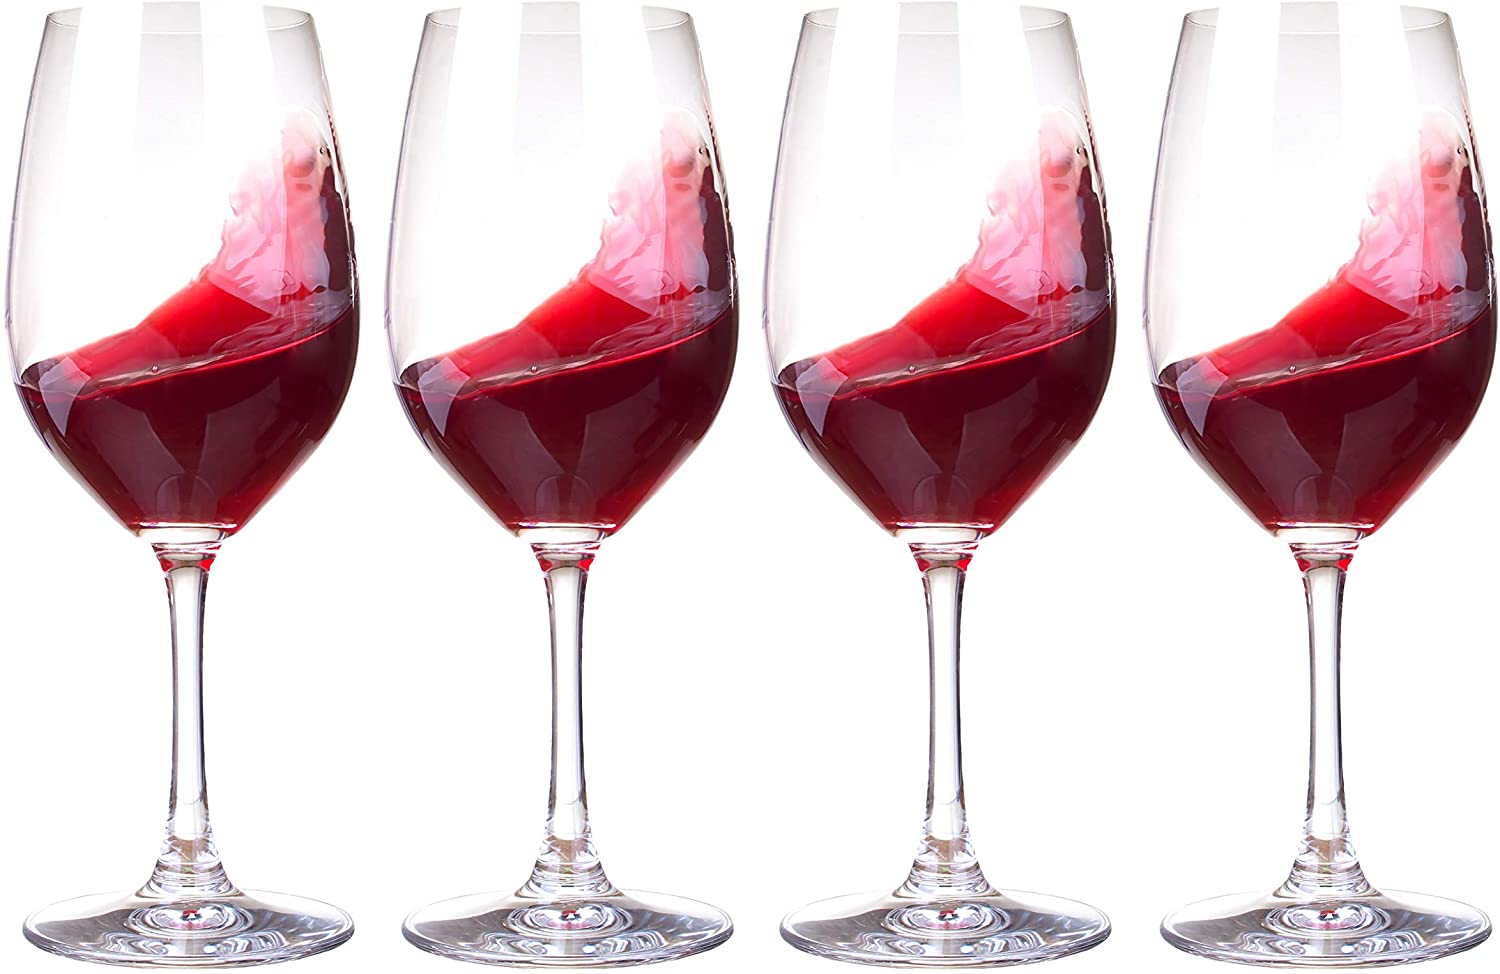 Red Wine Glasses Set of 4. Beautifully Crafted Red Wine Glasses Made from Quality Lead Free Crystal Large Red Wine Glasses To Hold 50 CL of Wine for All Occasion